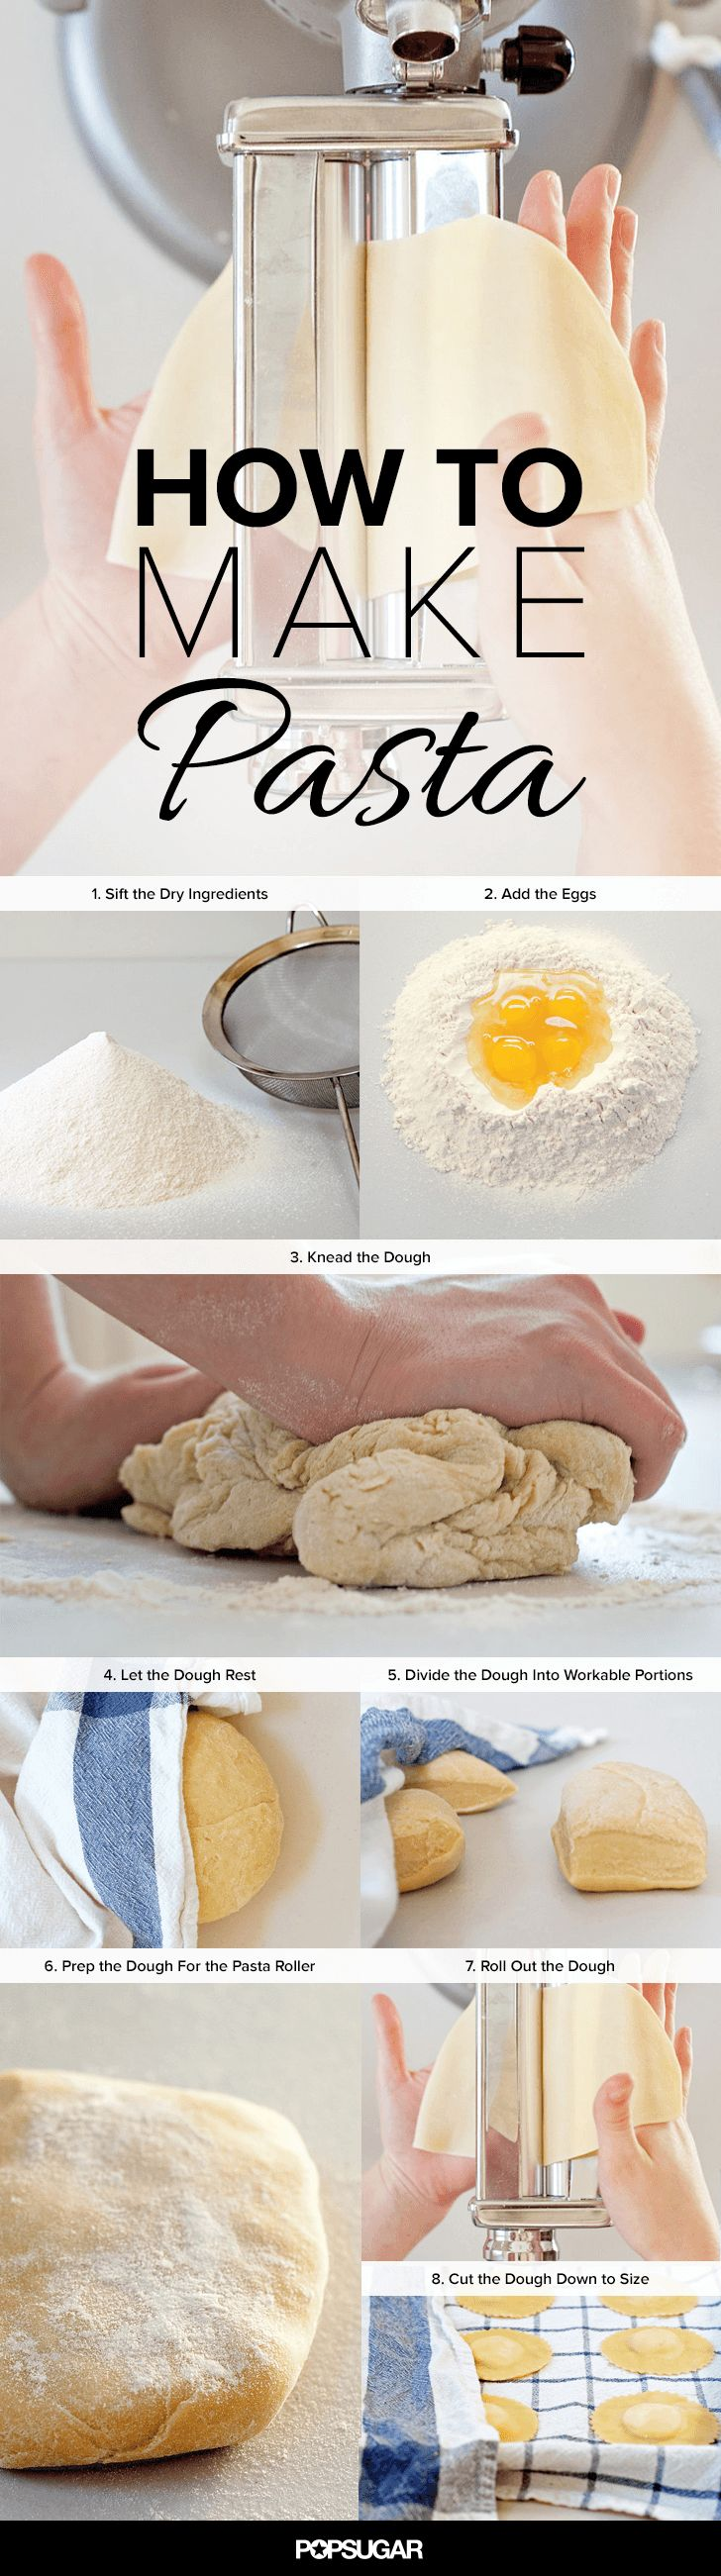 It's hard to believe that fresh pasta dough is made from such humble ingredients as flour, eggs, and a pinch of salt, but it's true. While the task might seem daunting on the outset, it's easier than it seems with this step-by-step how-to.